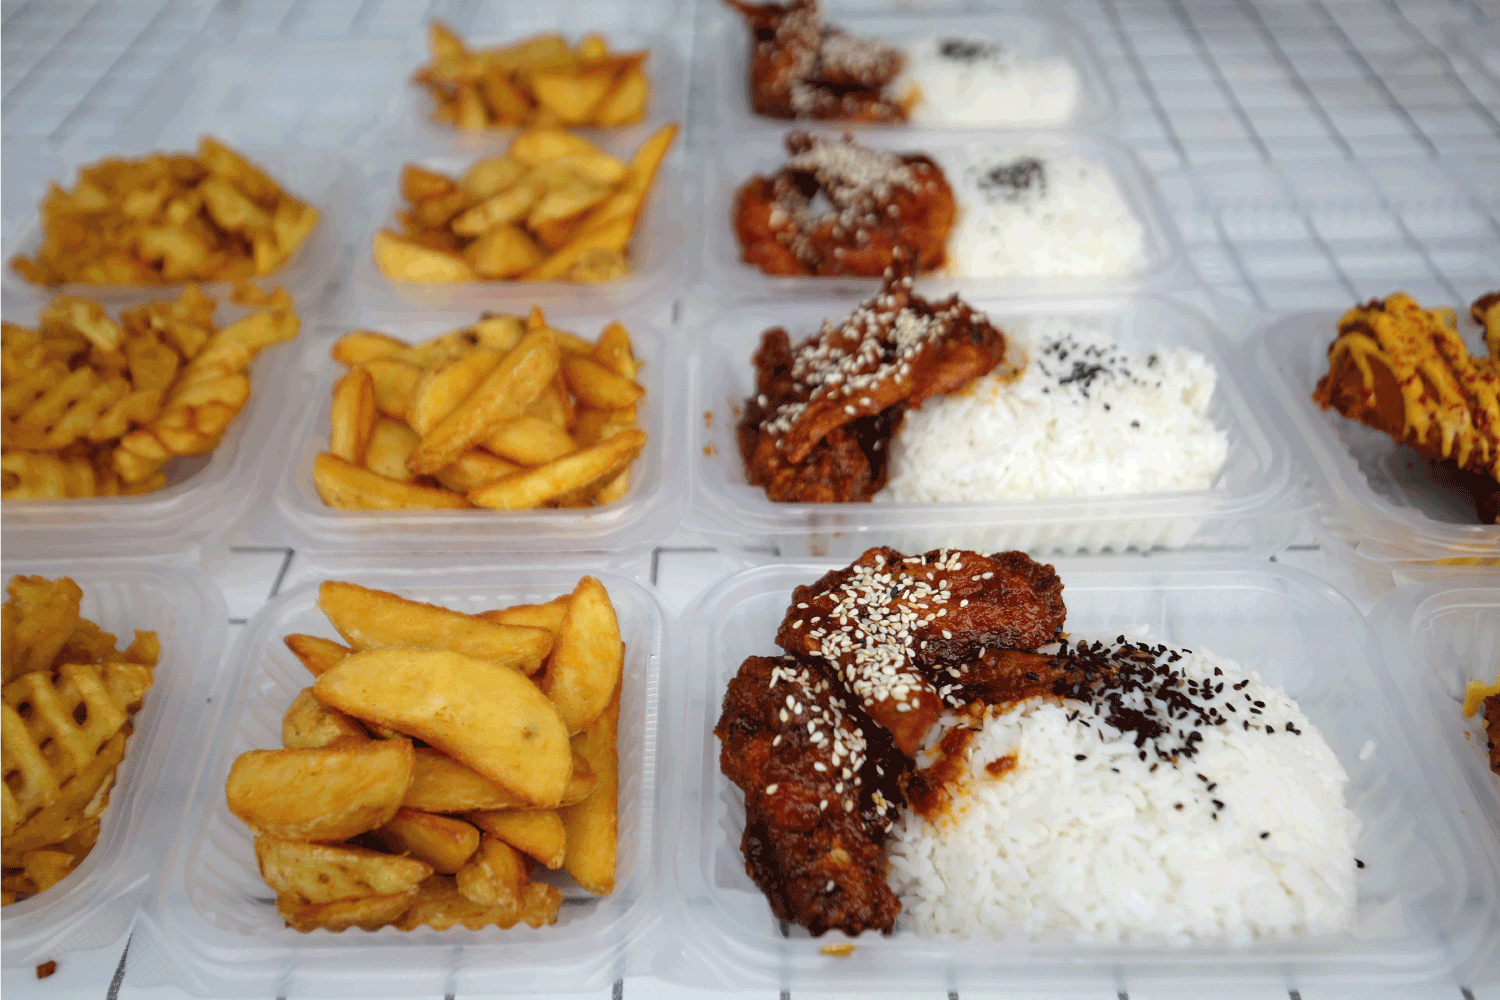 Varieties of lunch box food and potato wedges in pre-packaging for hygiene and shoppers' convenience.